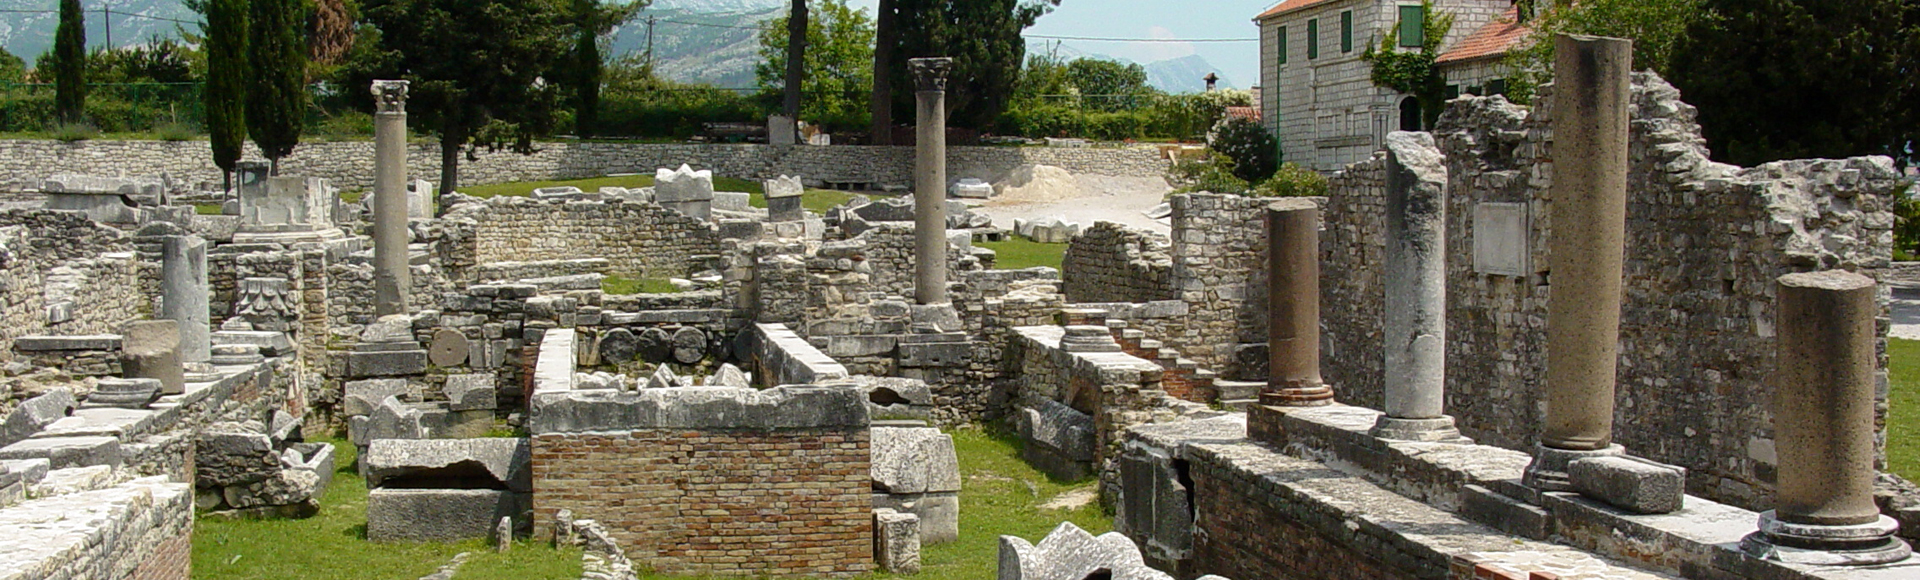 The remains of the ancient city of Salona